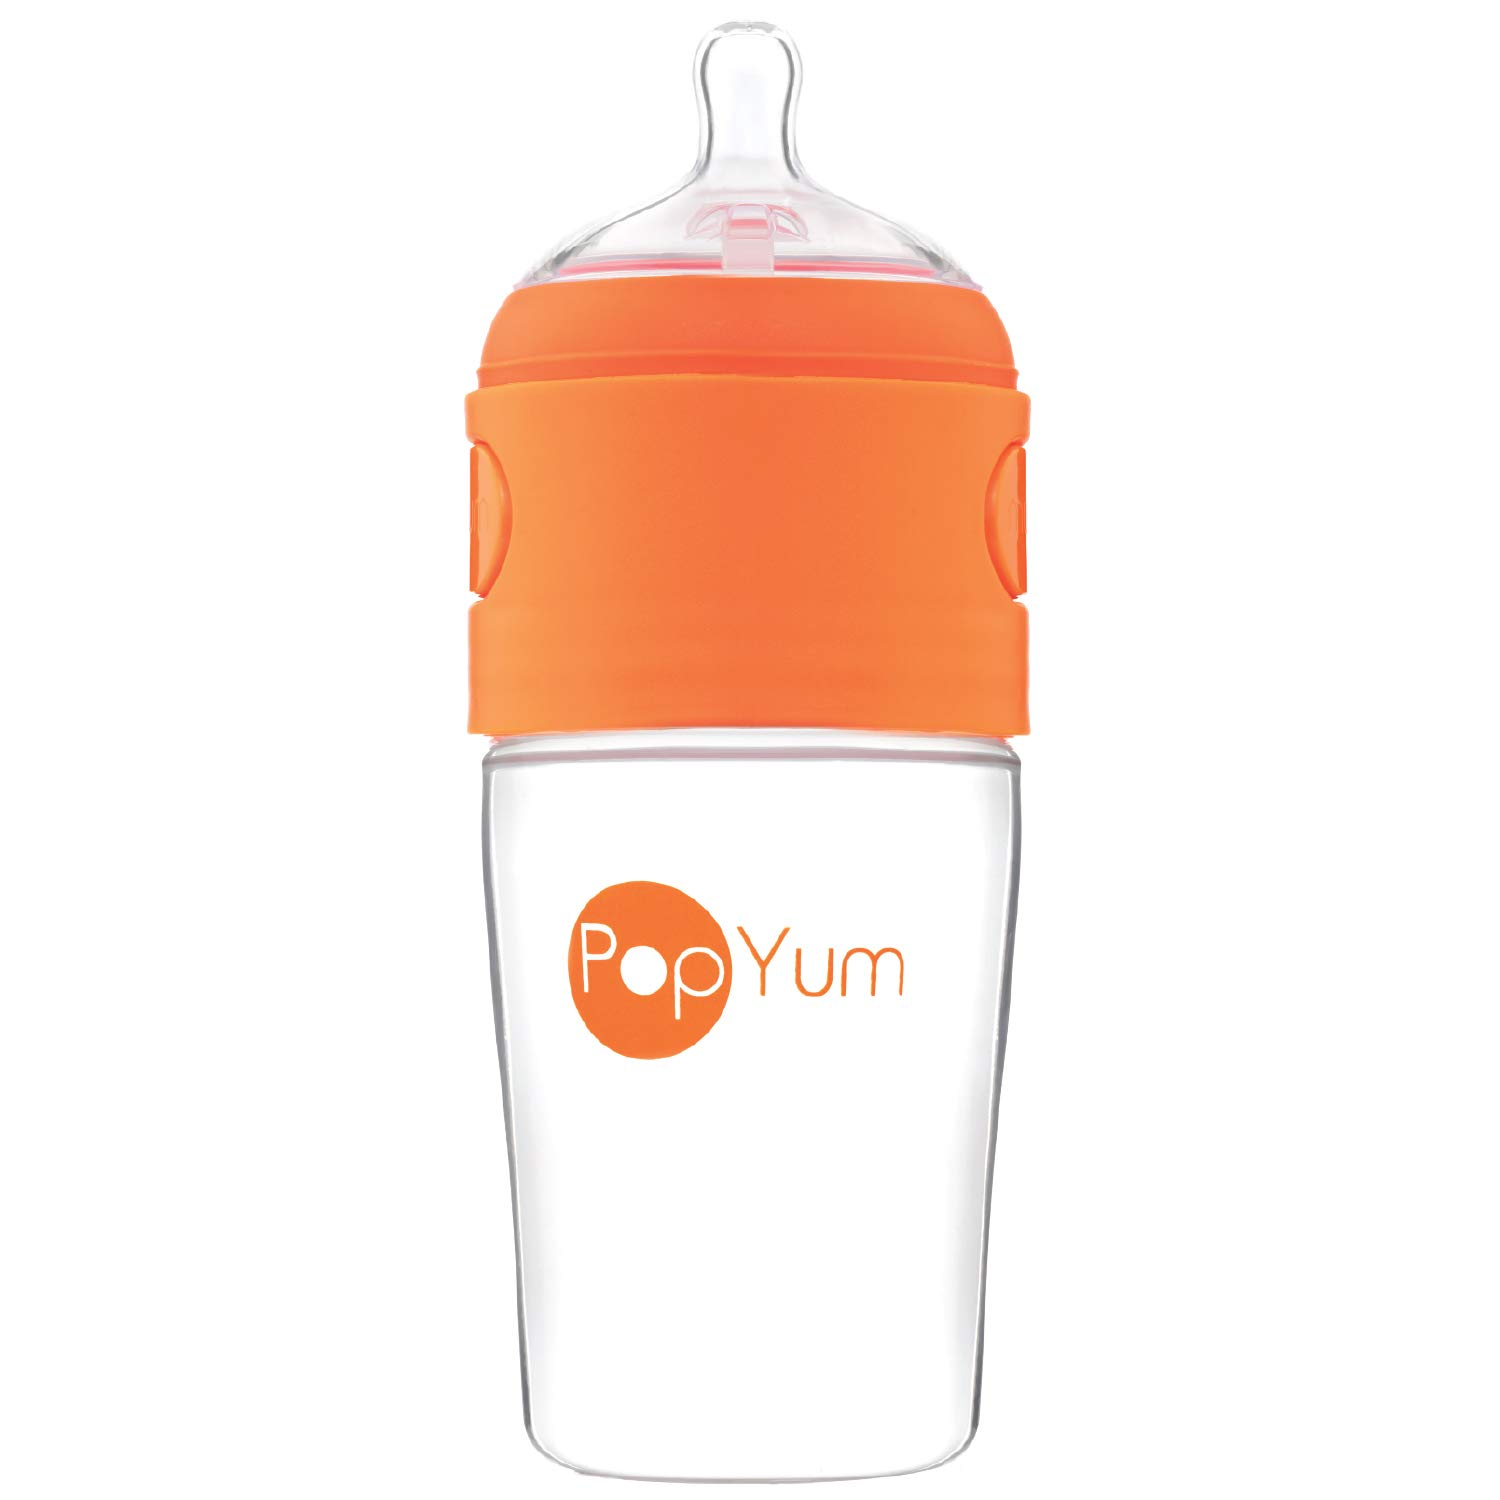 PopYum 260 ml Anti-Colic Formula Making/Mixing / Dispenser Baby Bottle (9 oz) PYB01100